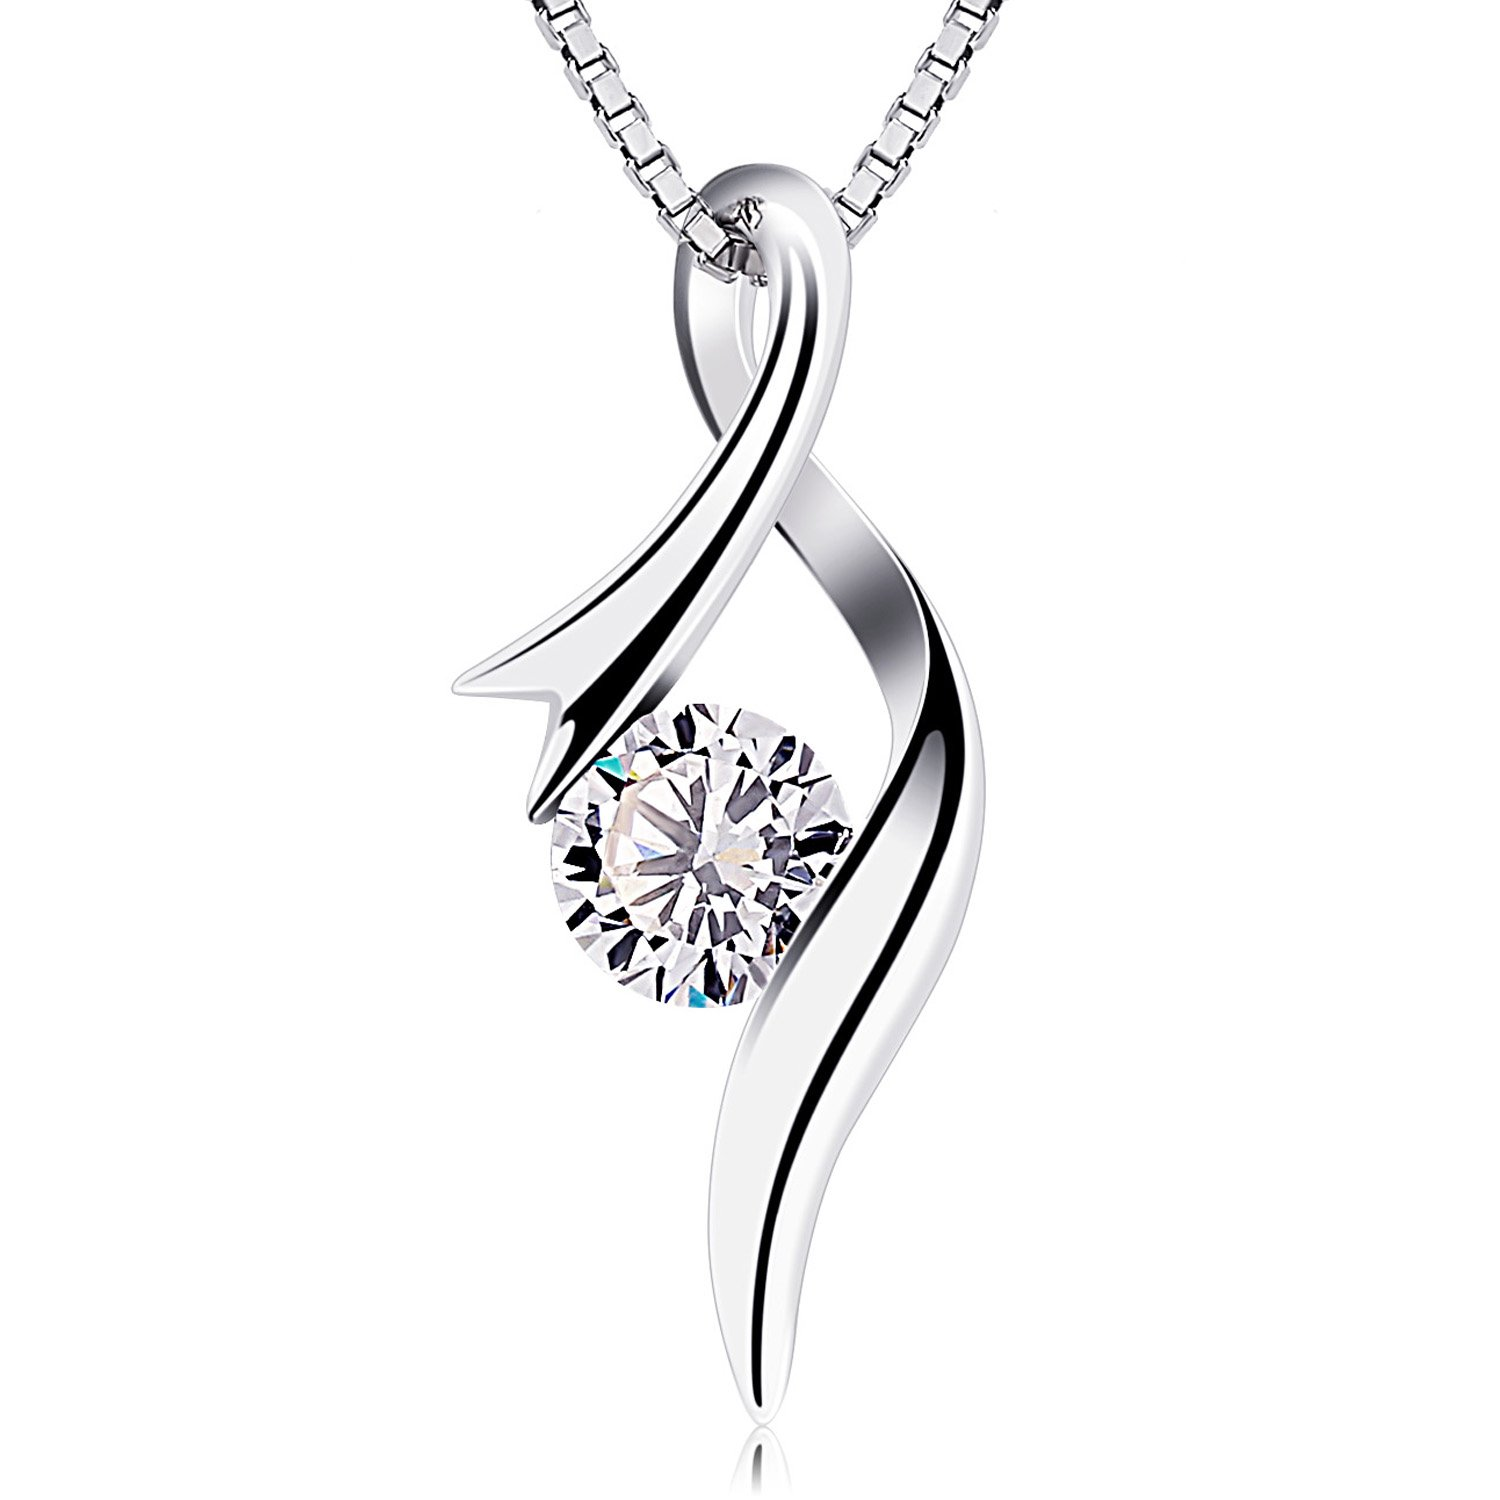 B.Catcher Necklaces 925 Sterling Silver Pendant Necklaces Cubic Zirconia Twist Heart Jewellery product image